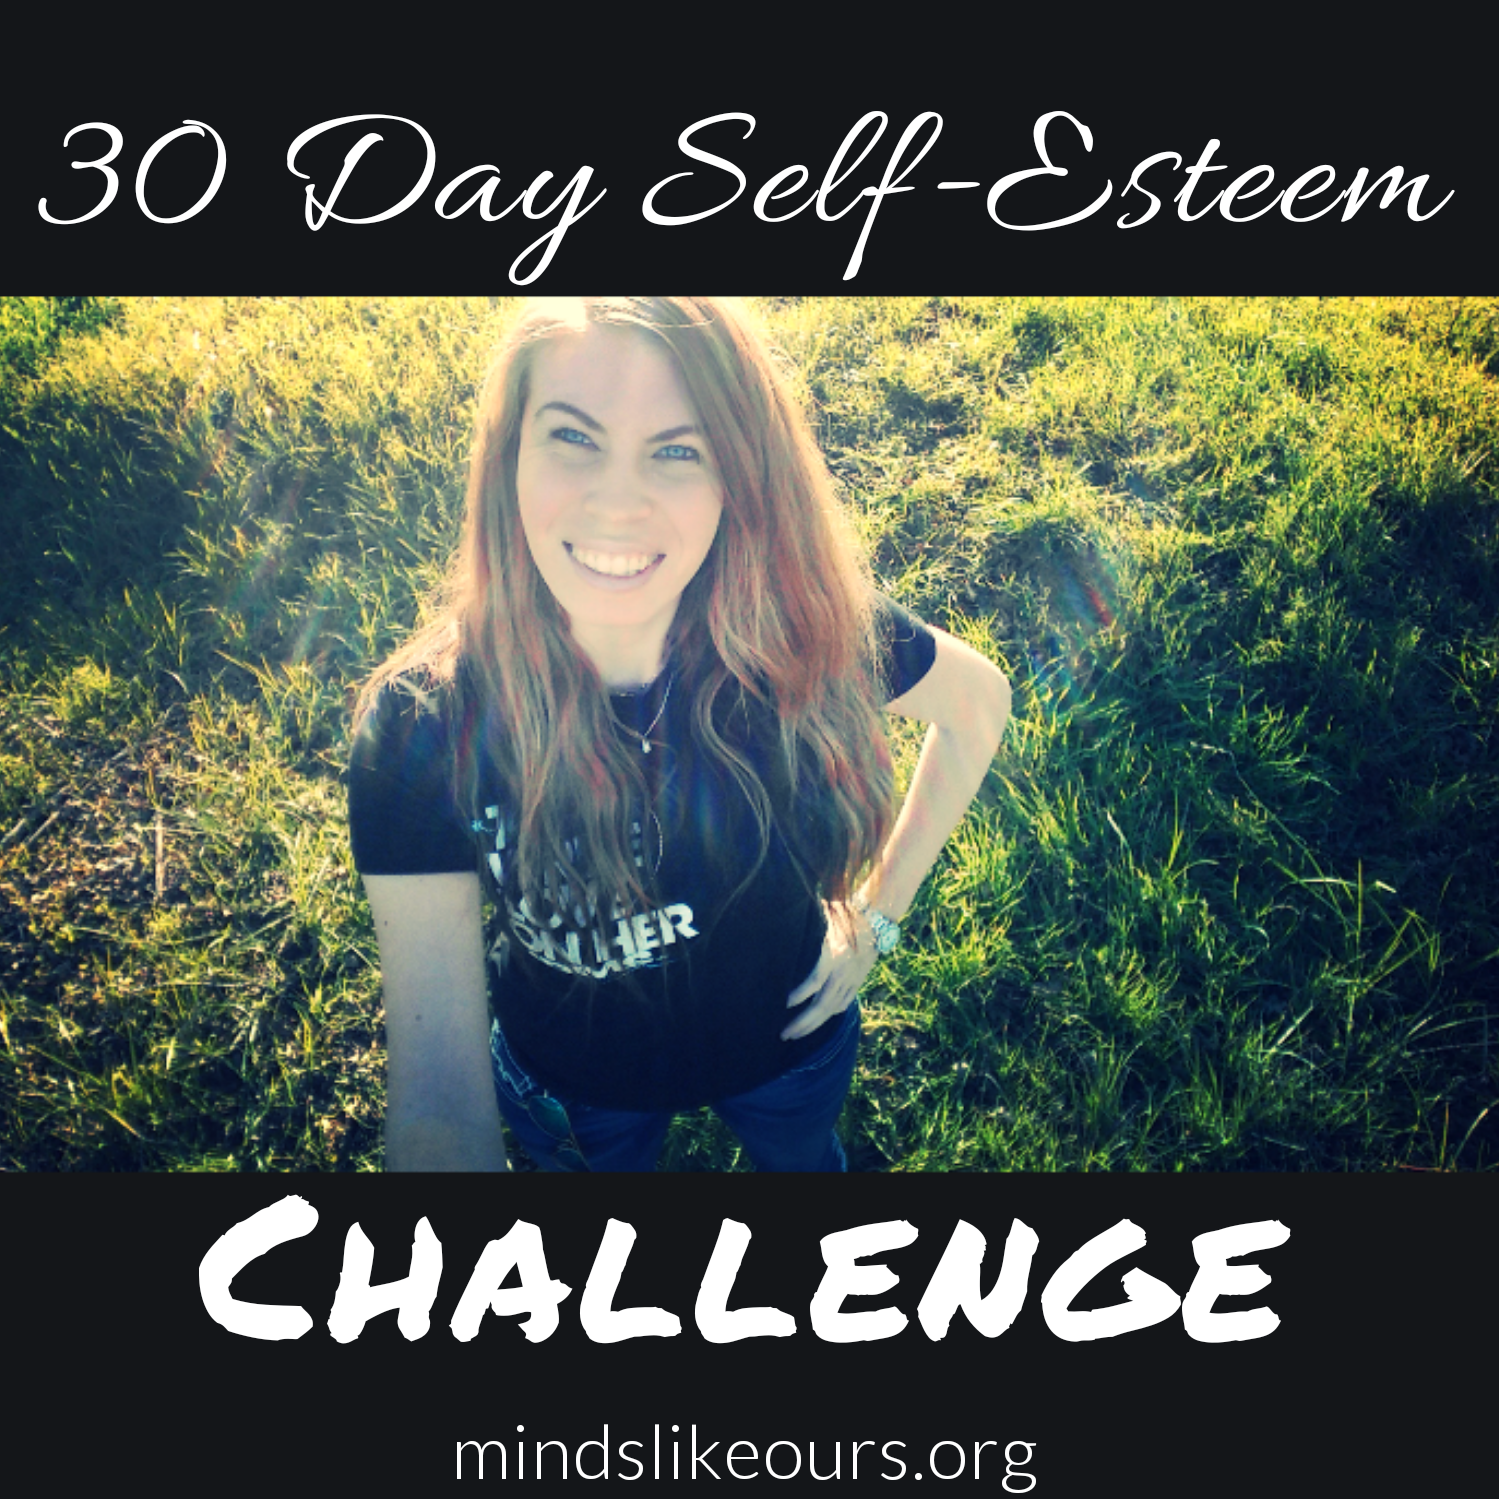 30 Day Self Esteem Challenge